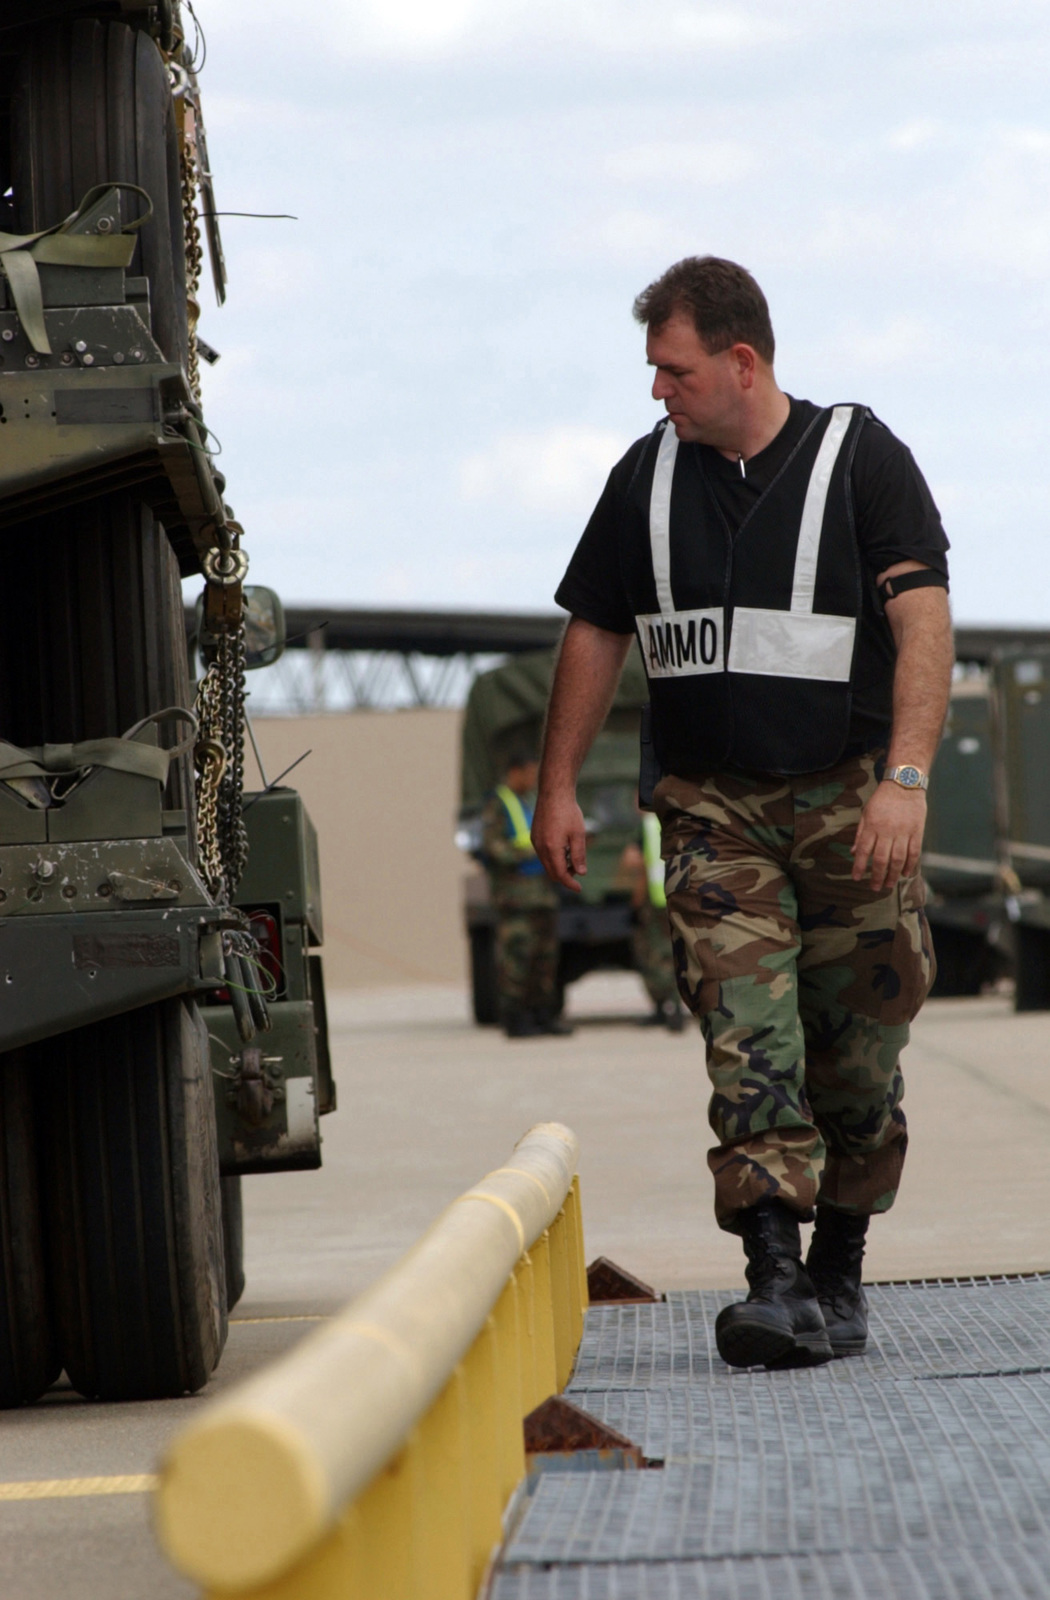 A US Air Force (USAF) Cargo Check-in crew member inspects a vehicle parked on a scale during Phase I of an Operation Readiness Exercise, being conducted on Shaw Air Force Base (AFB), South Carolina (SC)